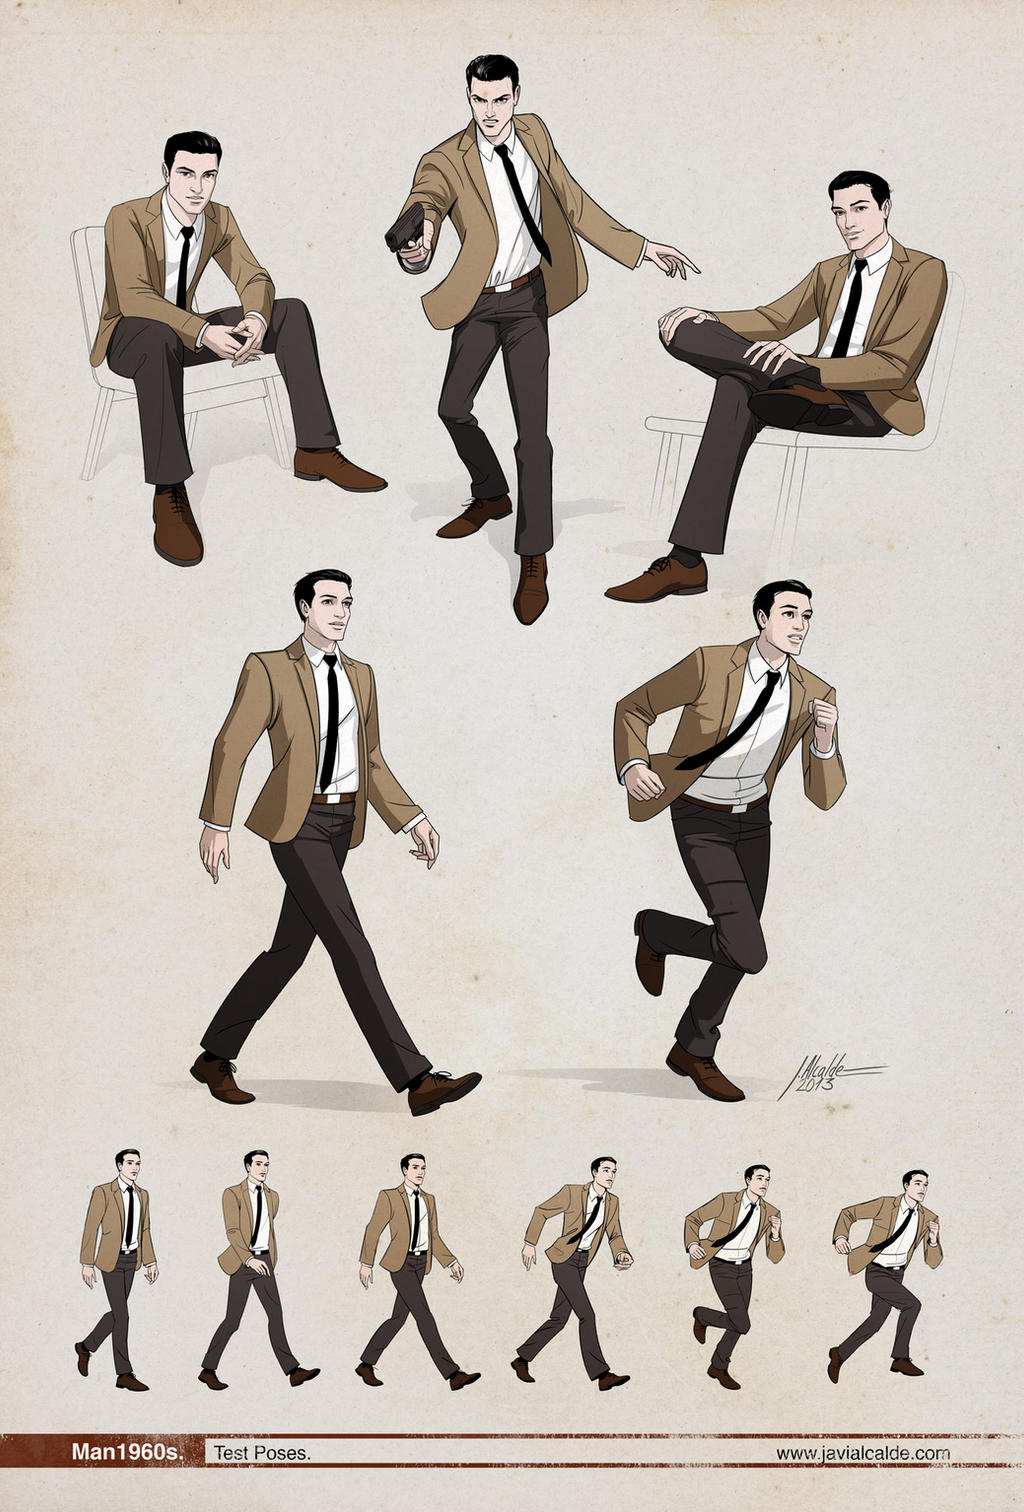 Man 1960s Dynamic poses by javieralcalde on DeviantArt -> Pose Tv Dising